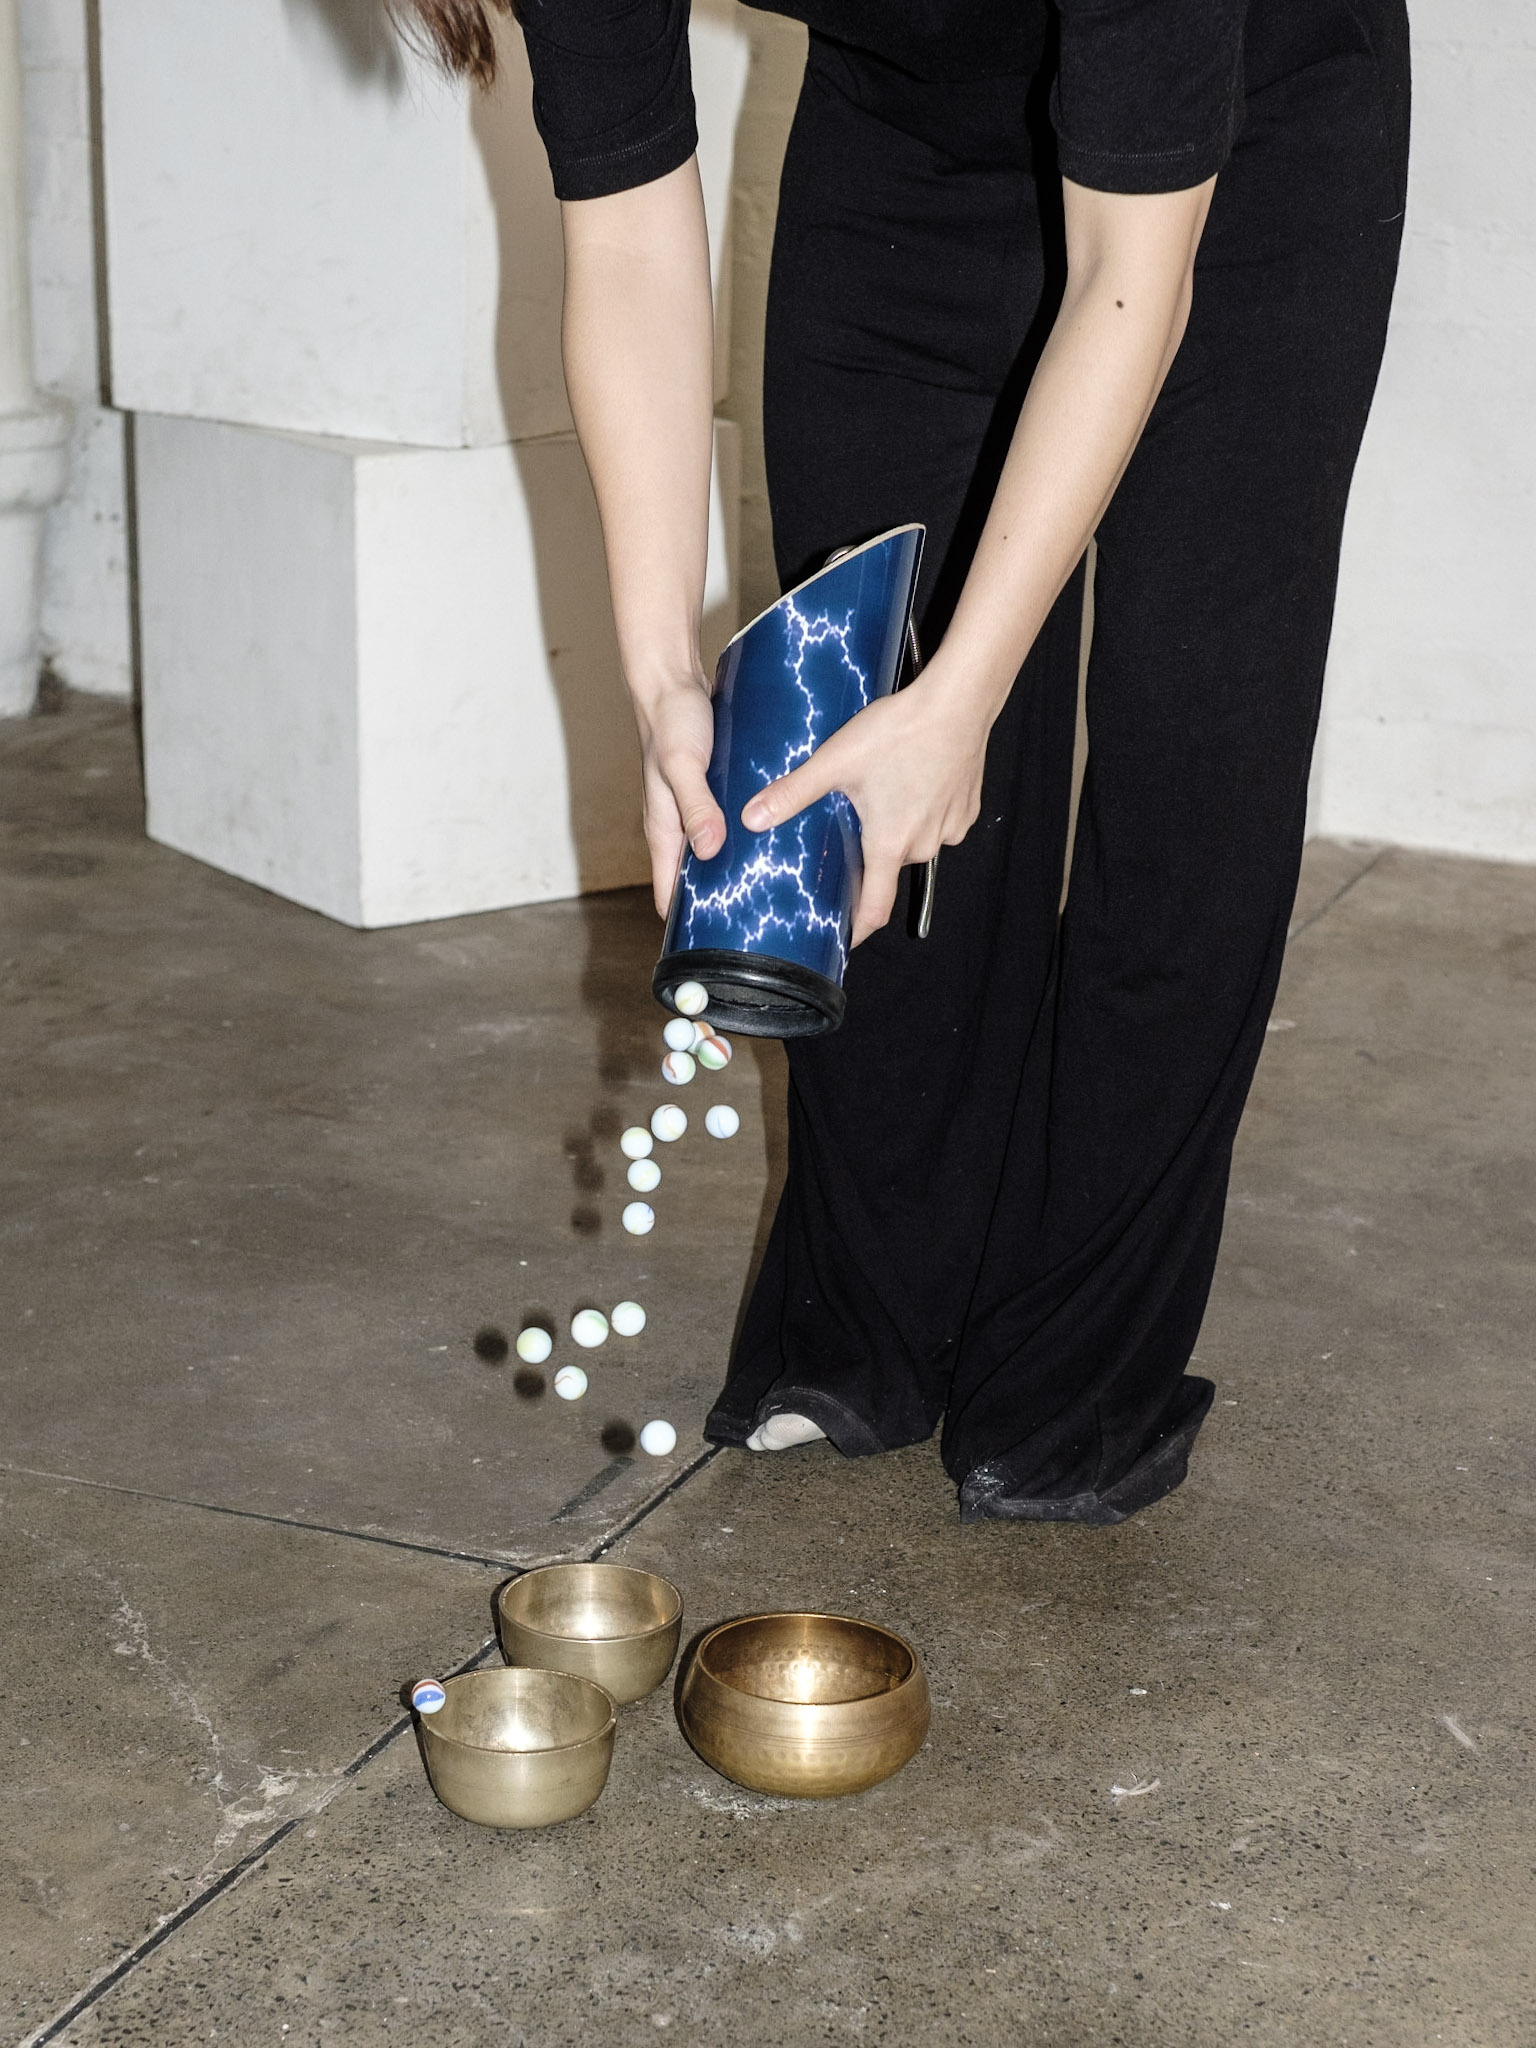 Percussionist Angela Wai-Nok Hui tips marbles onto brass Tibetan bowls in Pale Flower 1 by Zhuosheng Jin